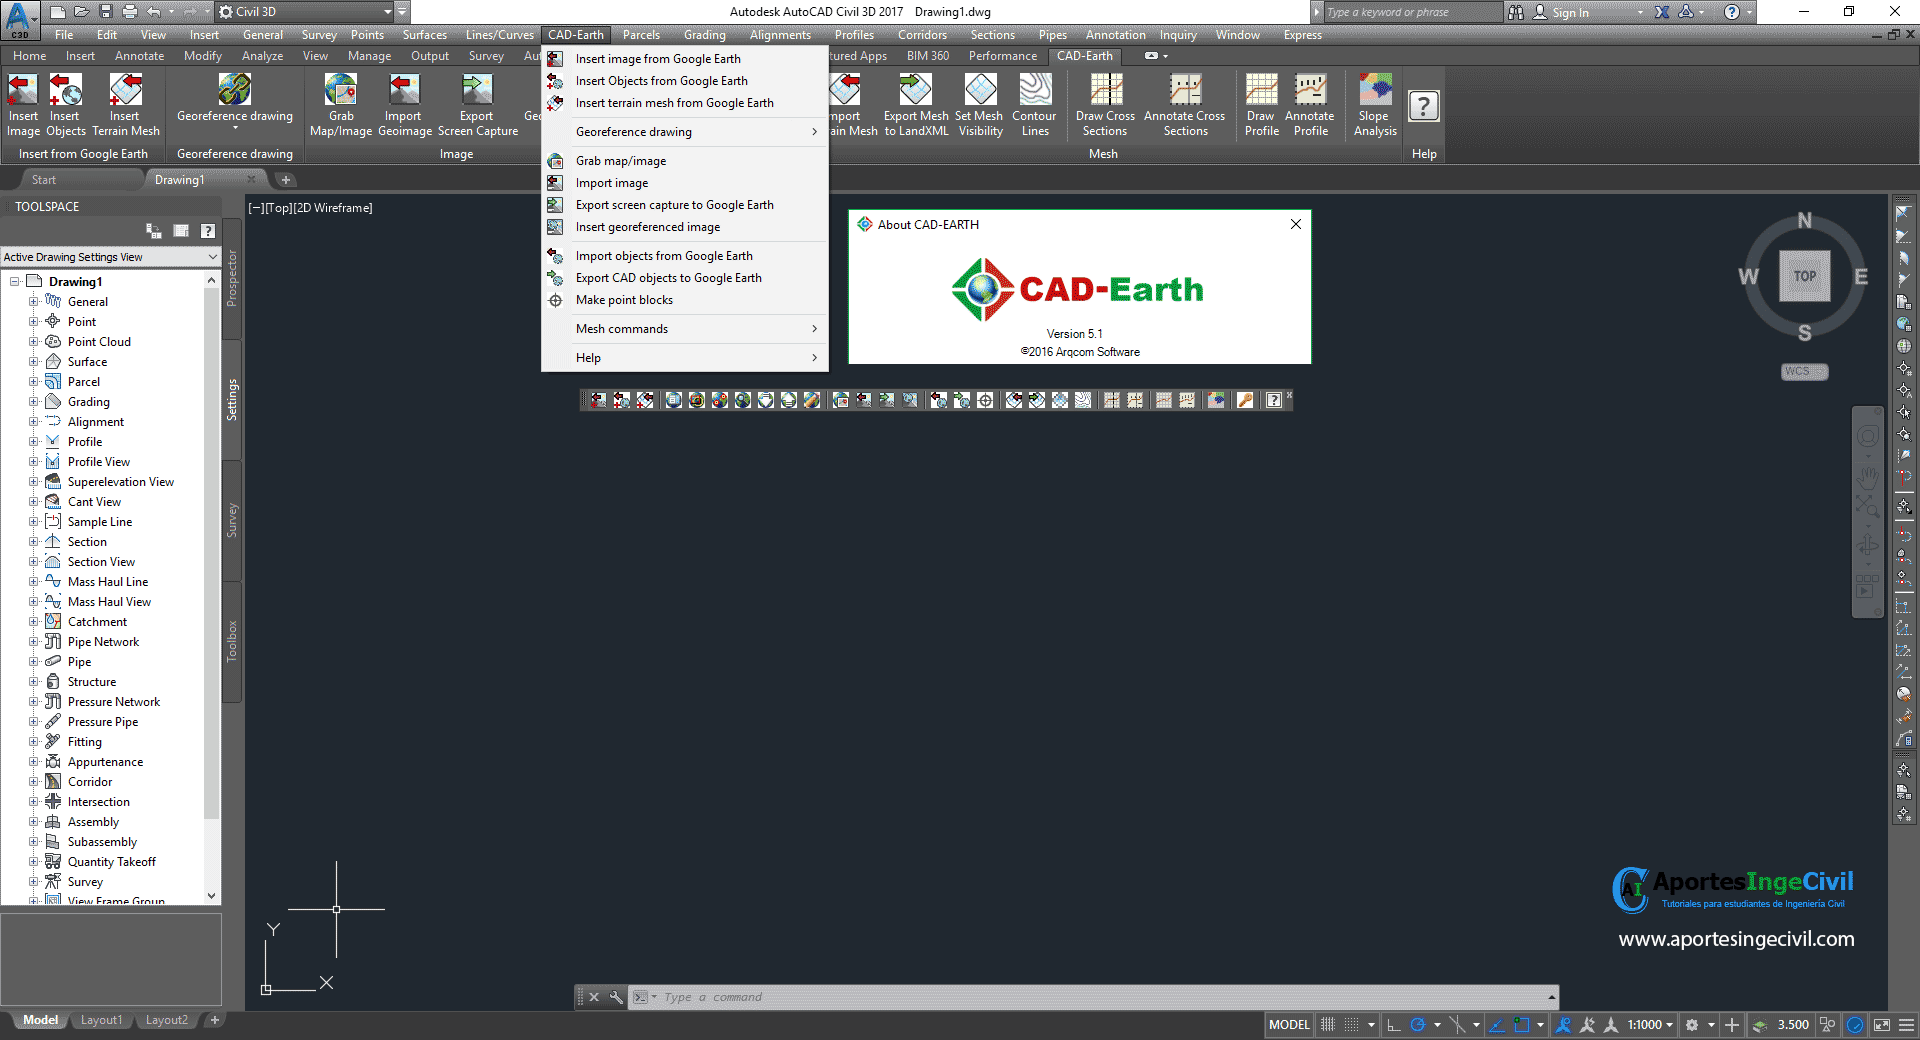 CAD-Earth v5.1.0